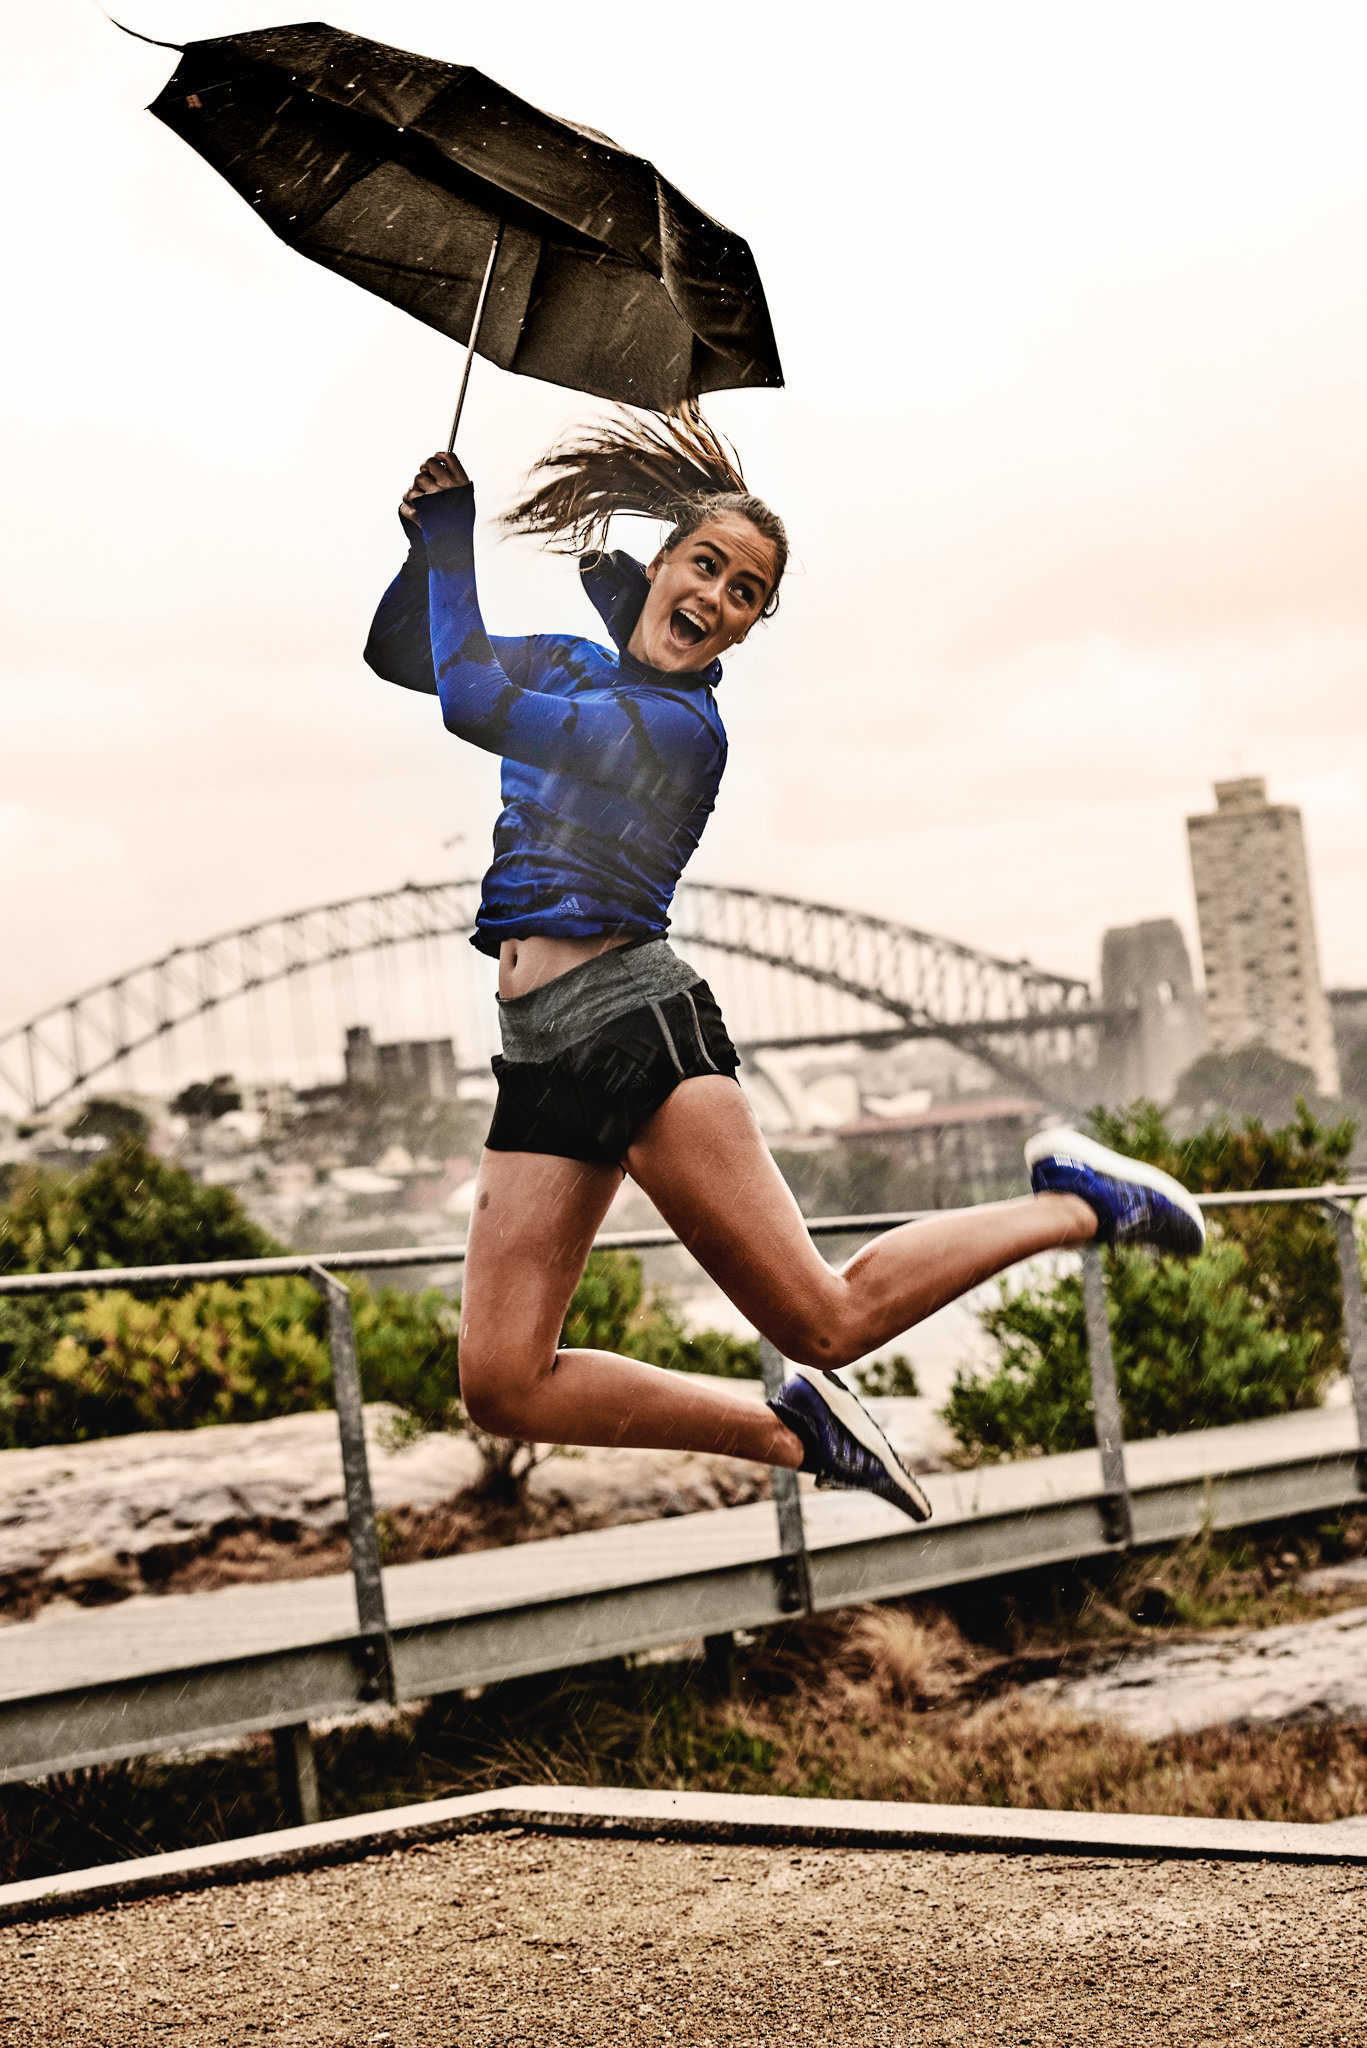 Campaign // Adidas Ultraboost X - Rain, hail or shine, (but mostly rain); Steph Claire Smith, Morgan Mitchell & Maddie Jade Coates for Adidas Australia Ultraboost X Social Campaign, PR Activation, Sydney & Melbourne. Photographs: Dave Blake, Agency: Mango Australia